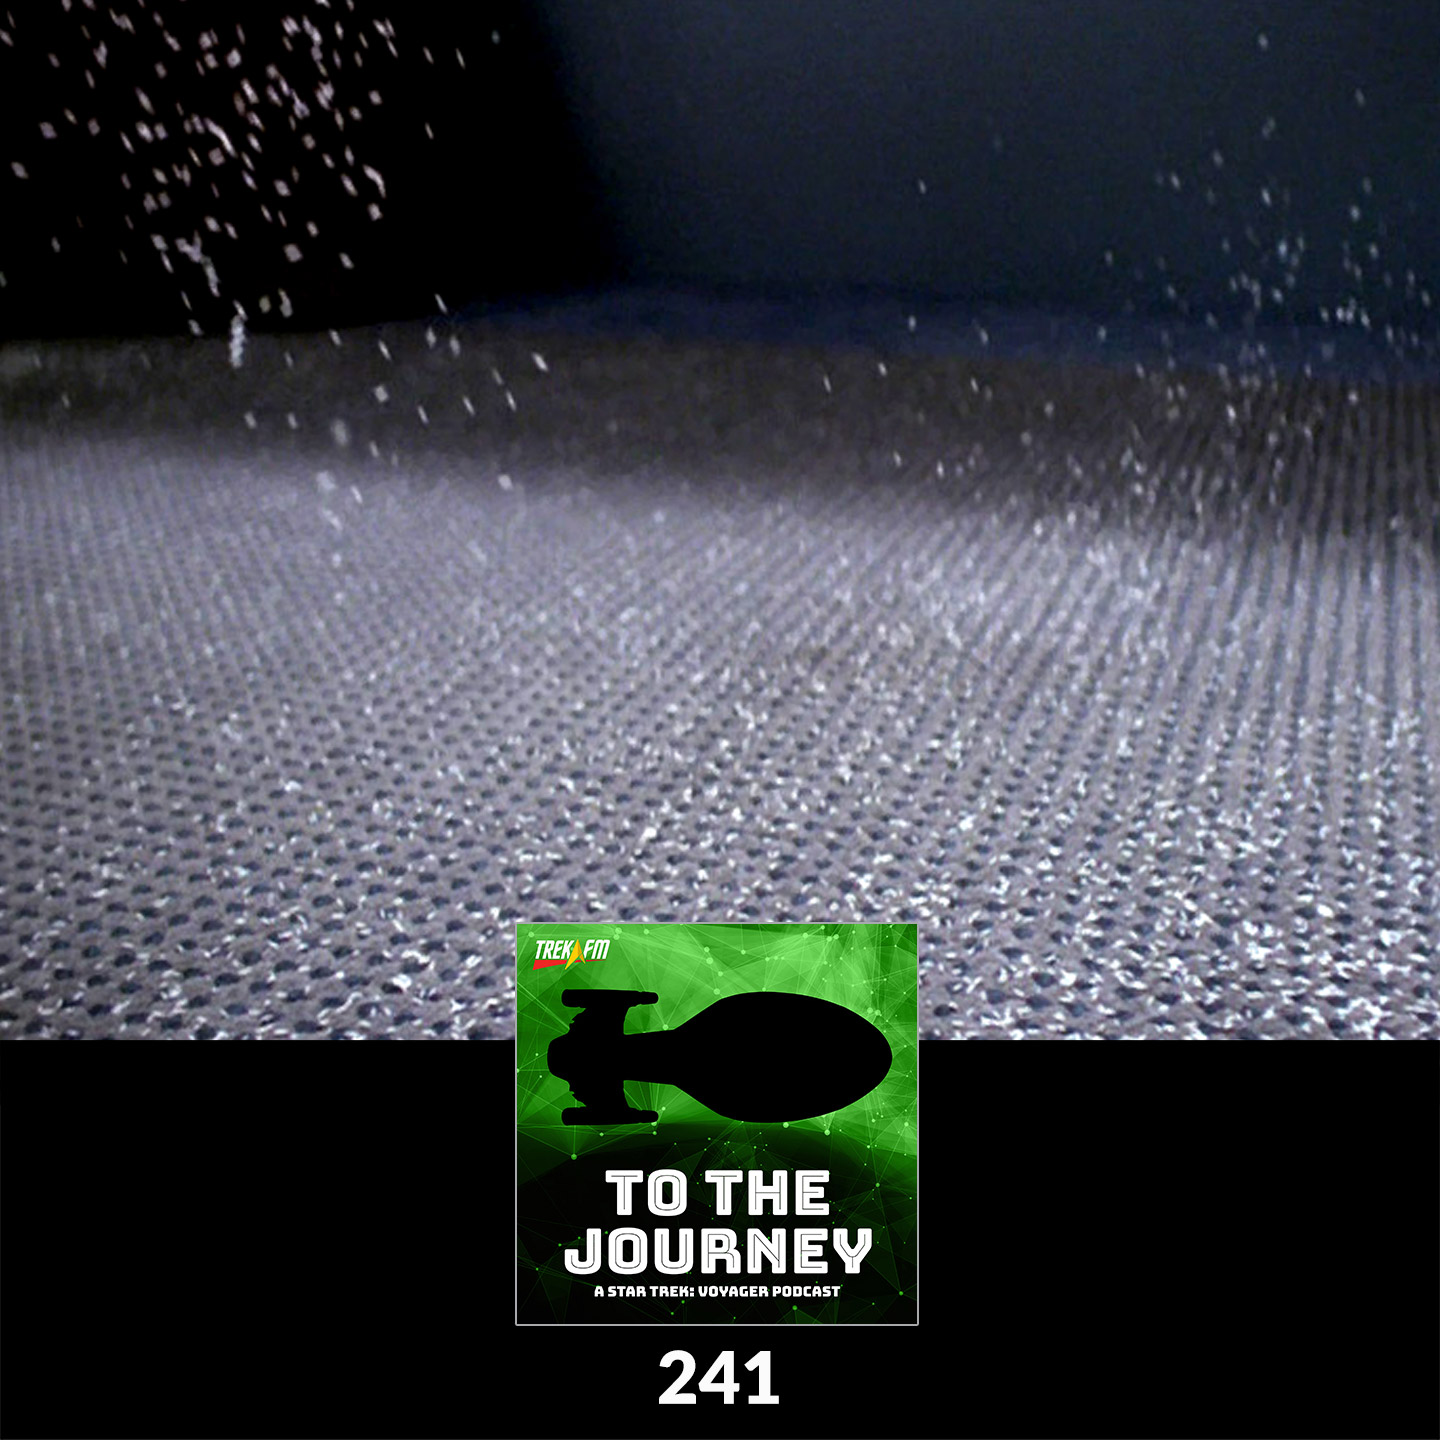 To The Journey 241: Leola Root Seeds, Anyone? - Course: Oblivion.